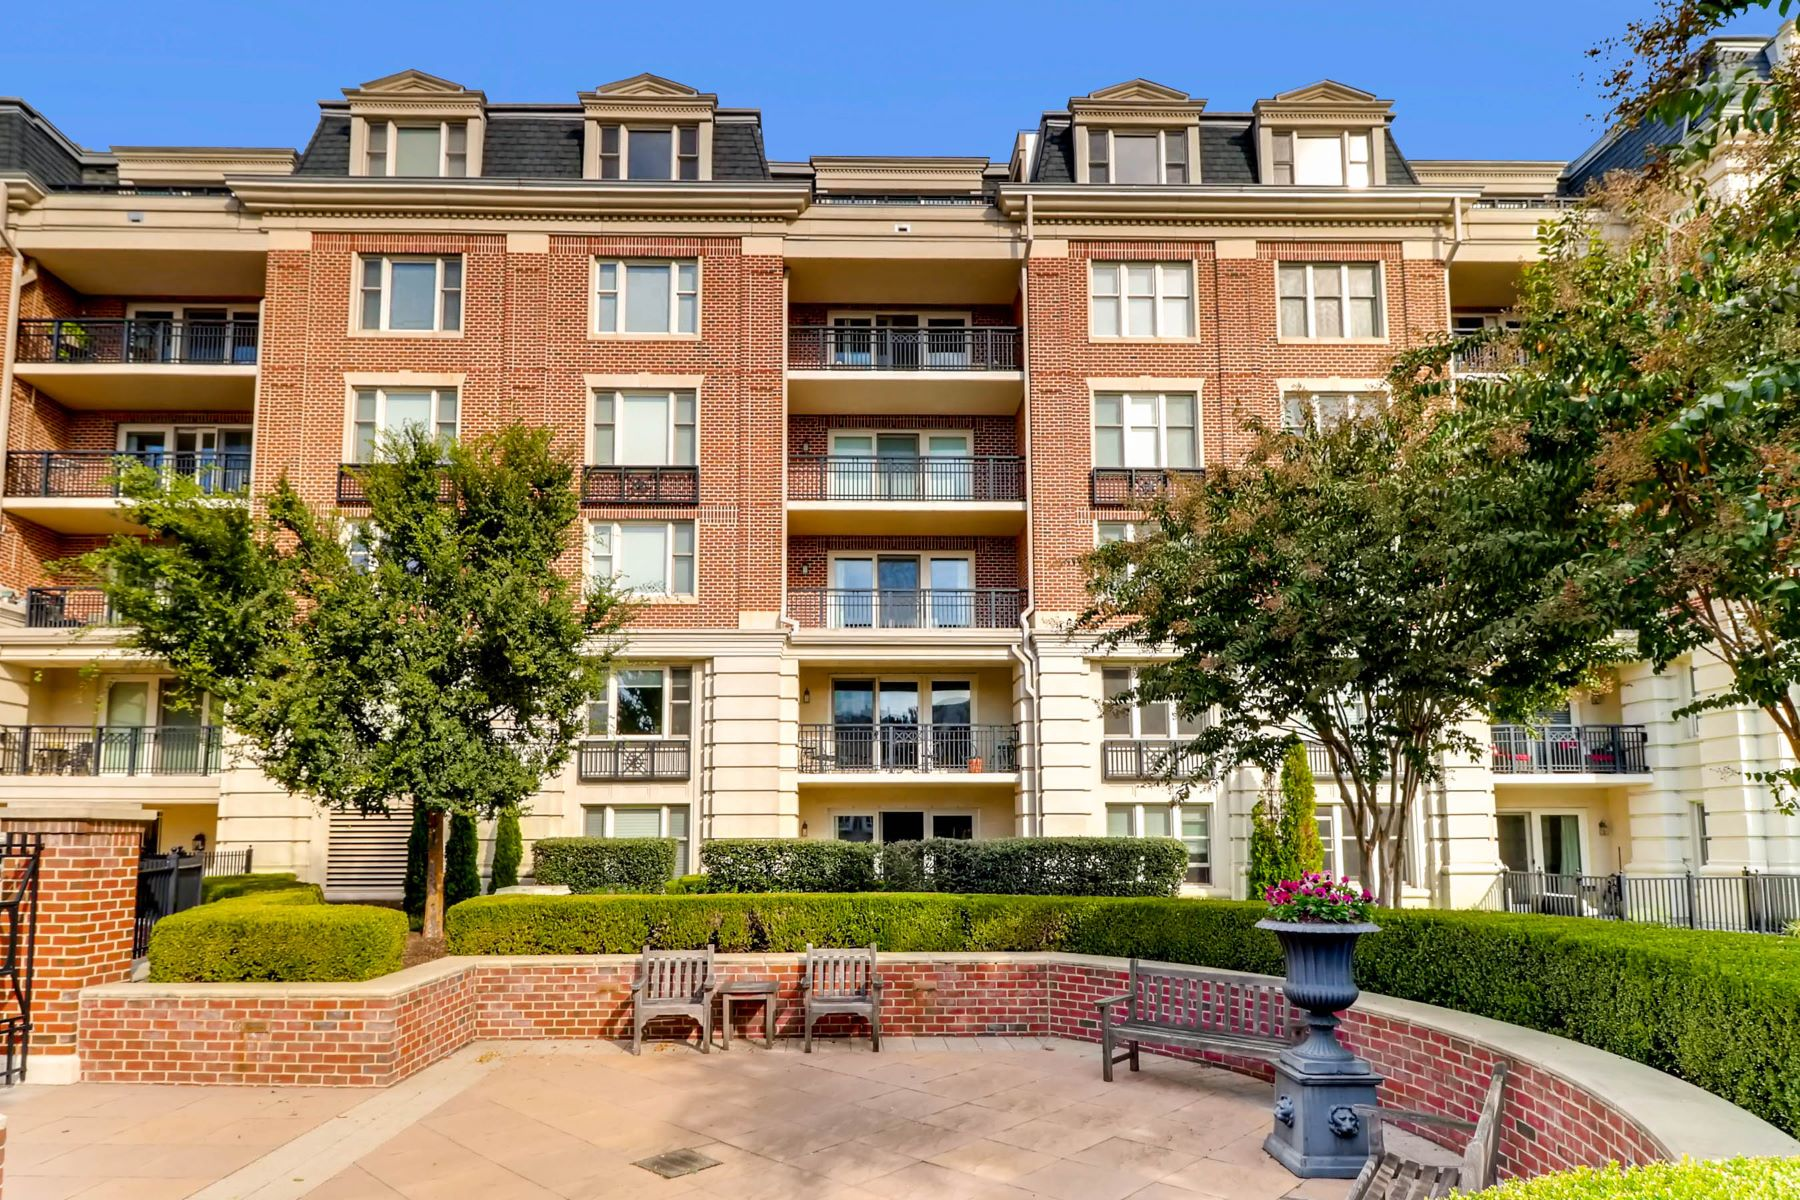 Condominium for Rent at The Ritz-Carlton Residences 801 Key Highway #P-59 Baltimore, Maryland 21230 United States